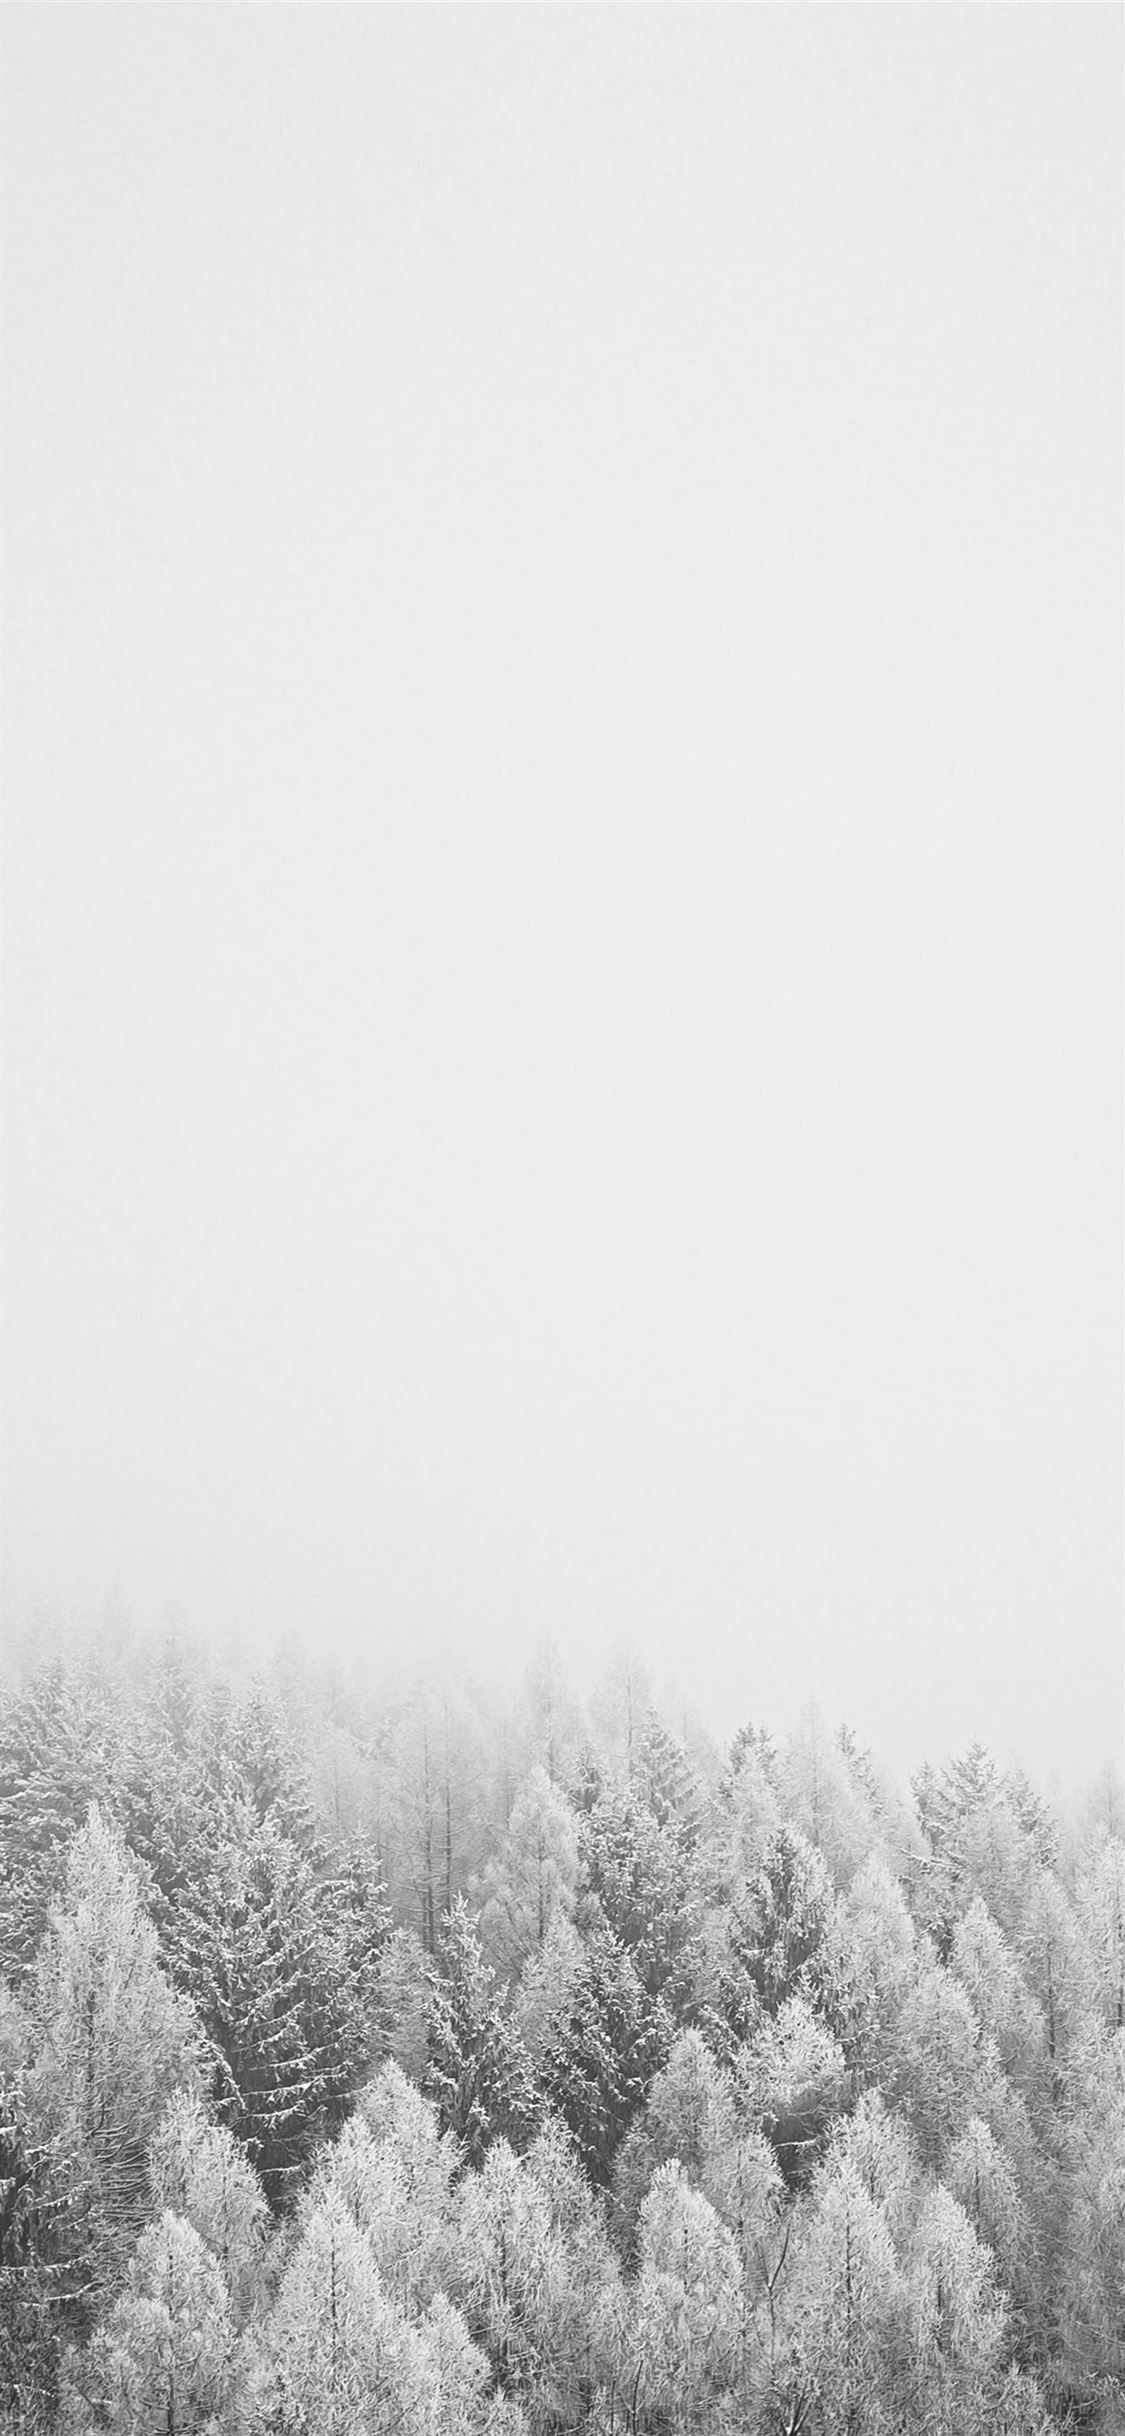 Snow Covered Trees During Daytime Grey Black And White Nature Tree Snow Iphone11w Snow Wallpaper Iphone Winter Wallpaper Black And White Wallpaper Iphone